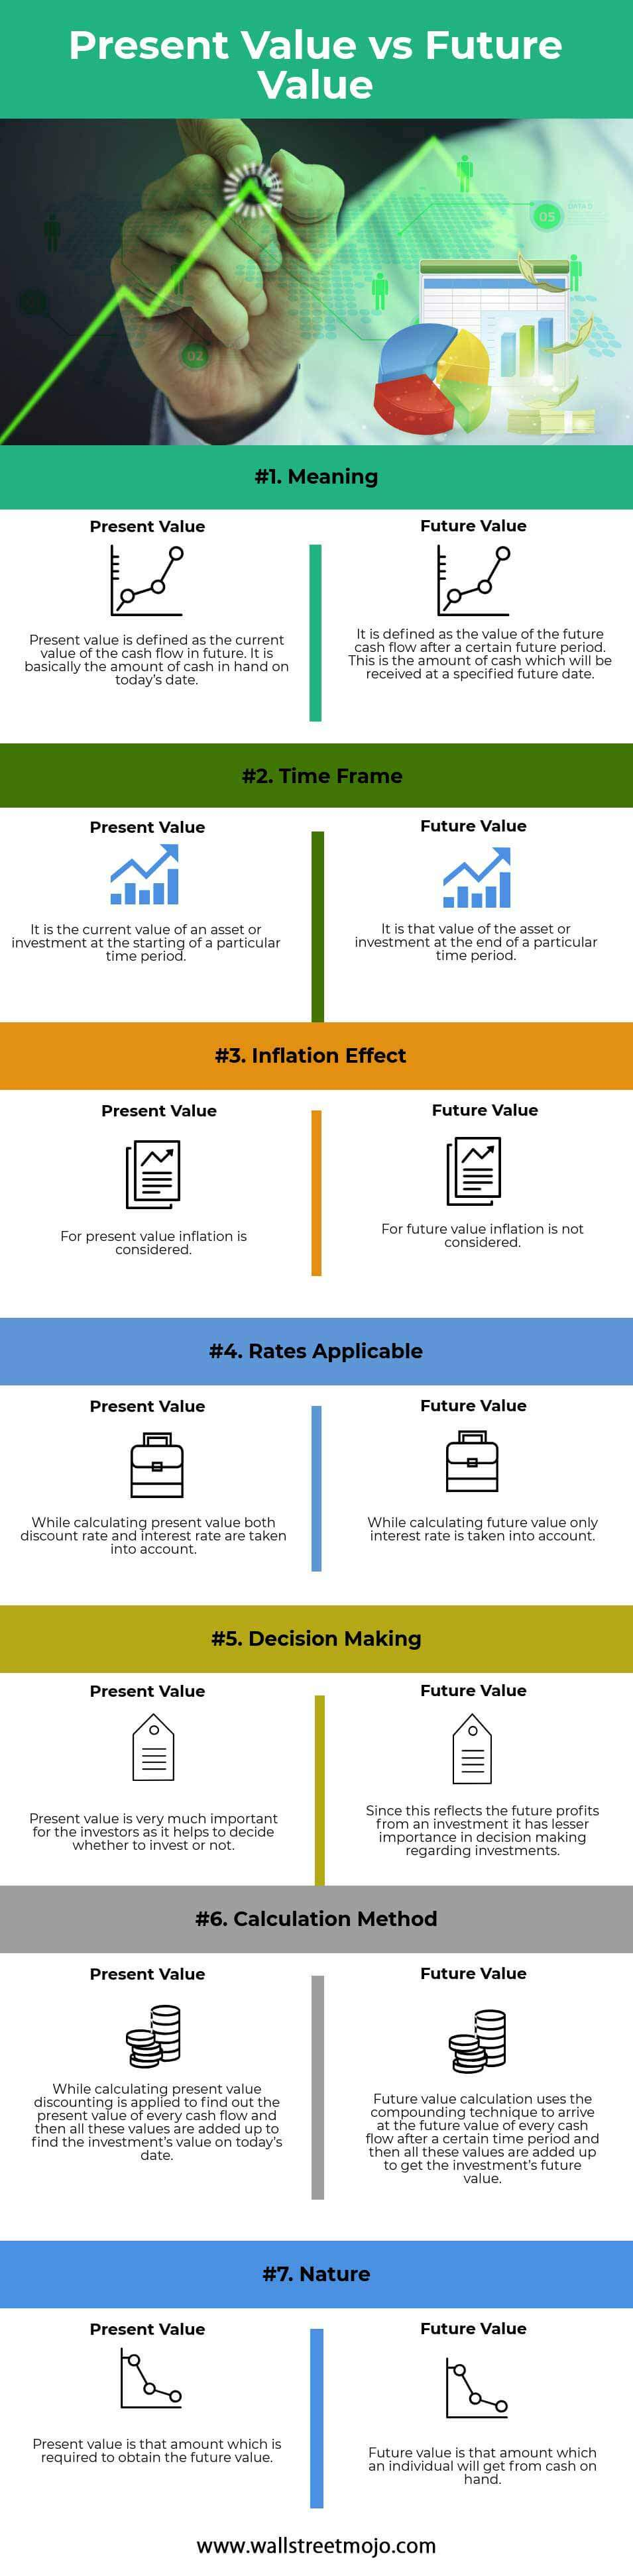 Present-value-vs-Future-value-info